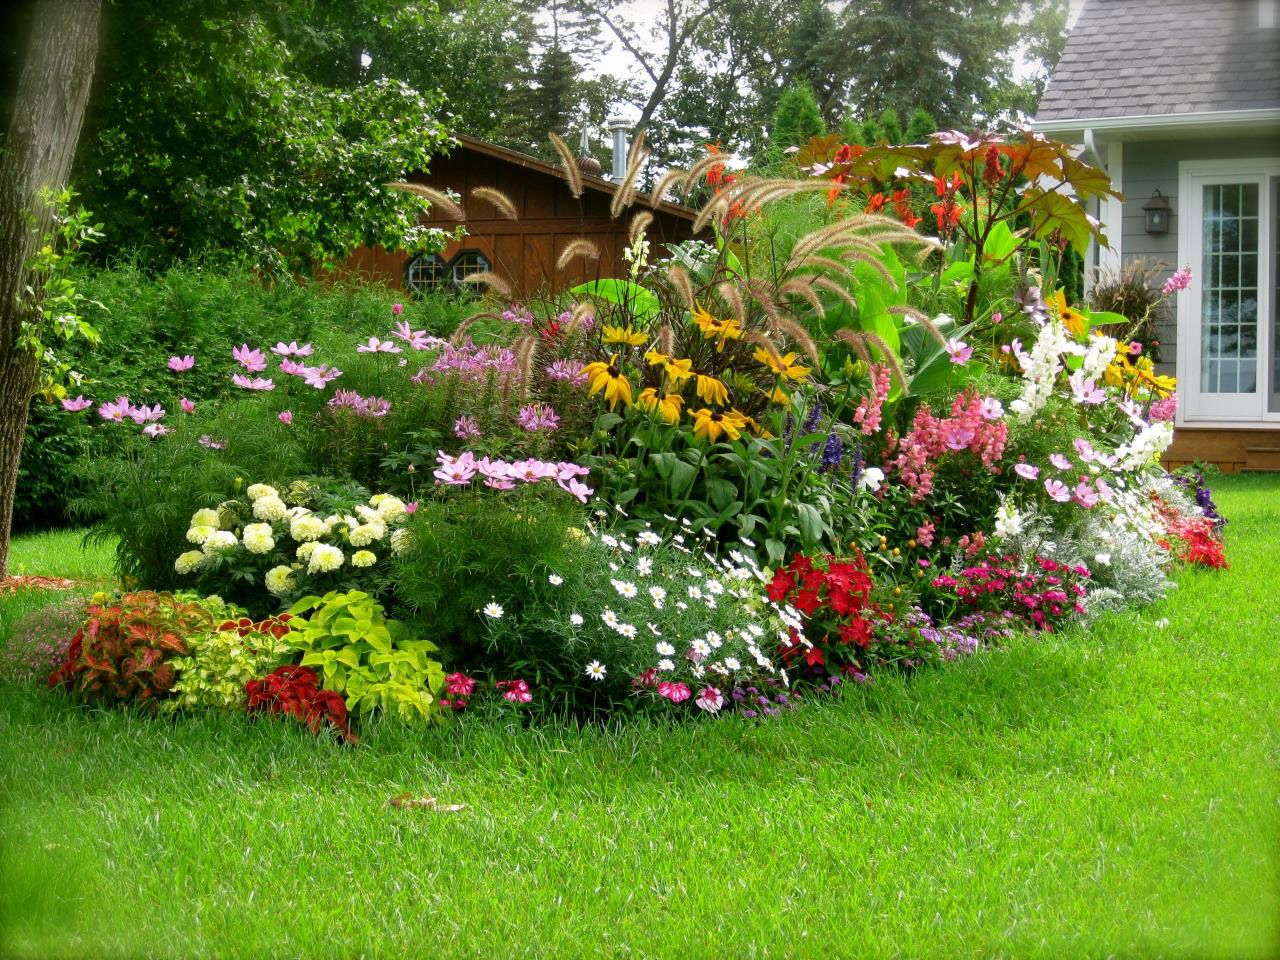 landscaping and garden ideas | landscape garden ideas,landscape